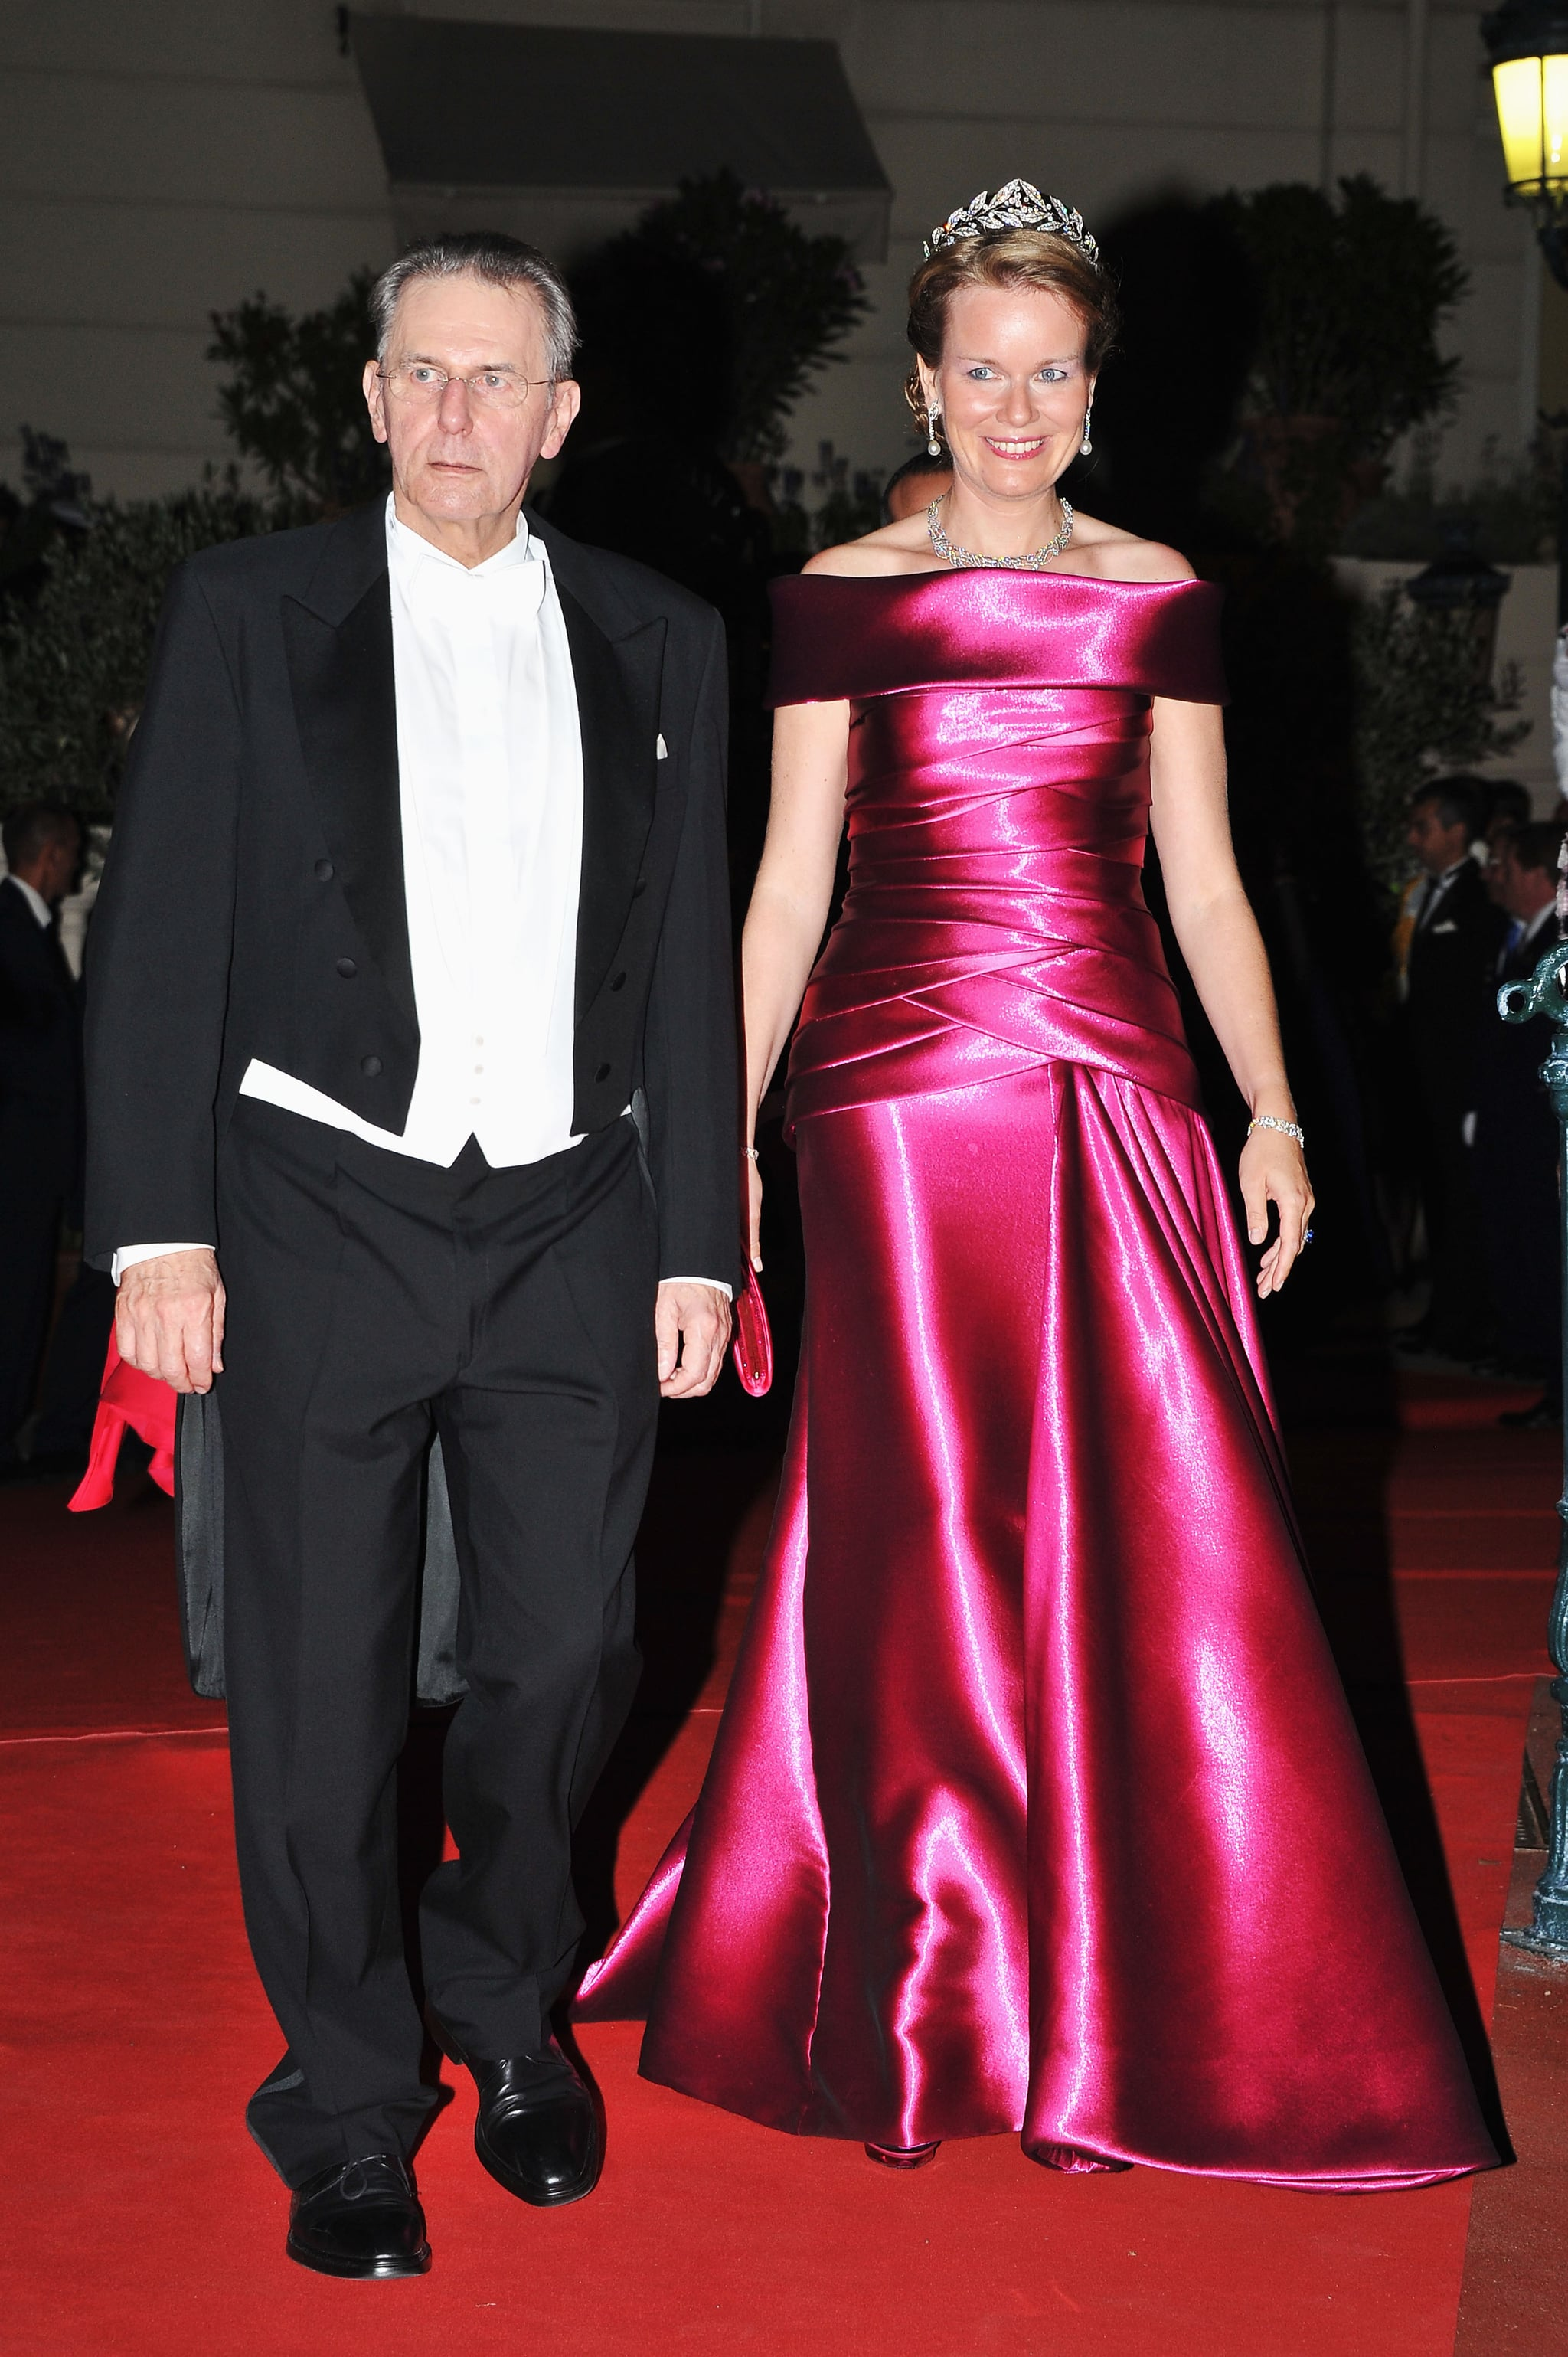 Princess Mathilde of Belgium attended a dinner at Opera terraces after the religious wedding ceremony of Prince Albert II of Monaco and Princess Charlene of Monaco.